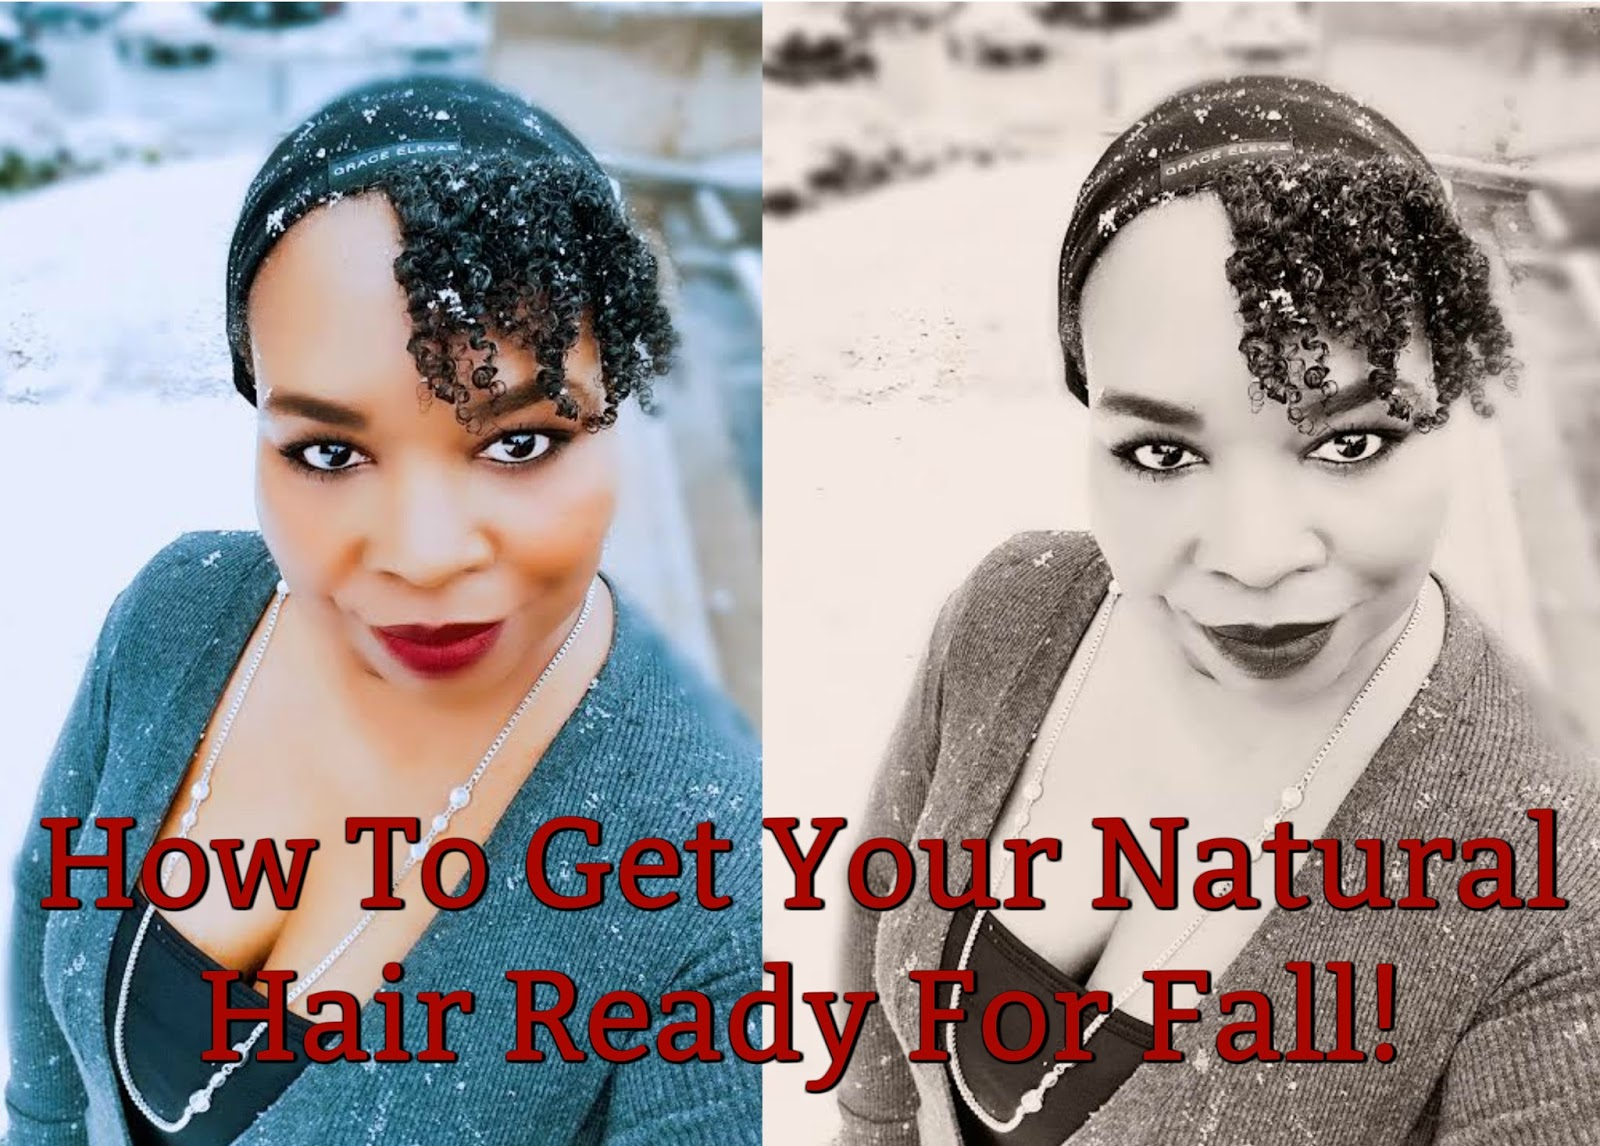 Women hair care includes getting hair ready for fall